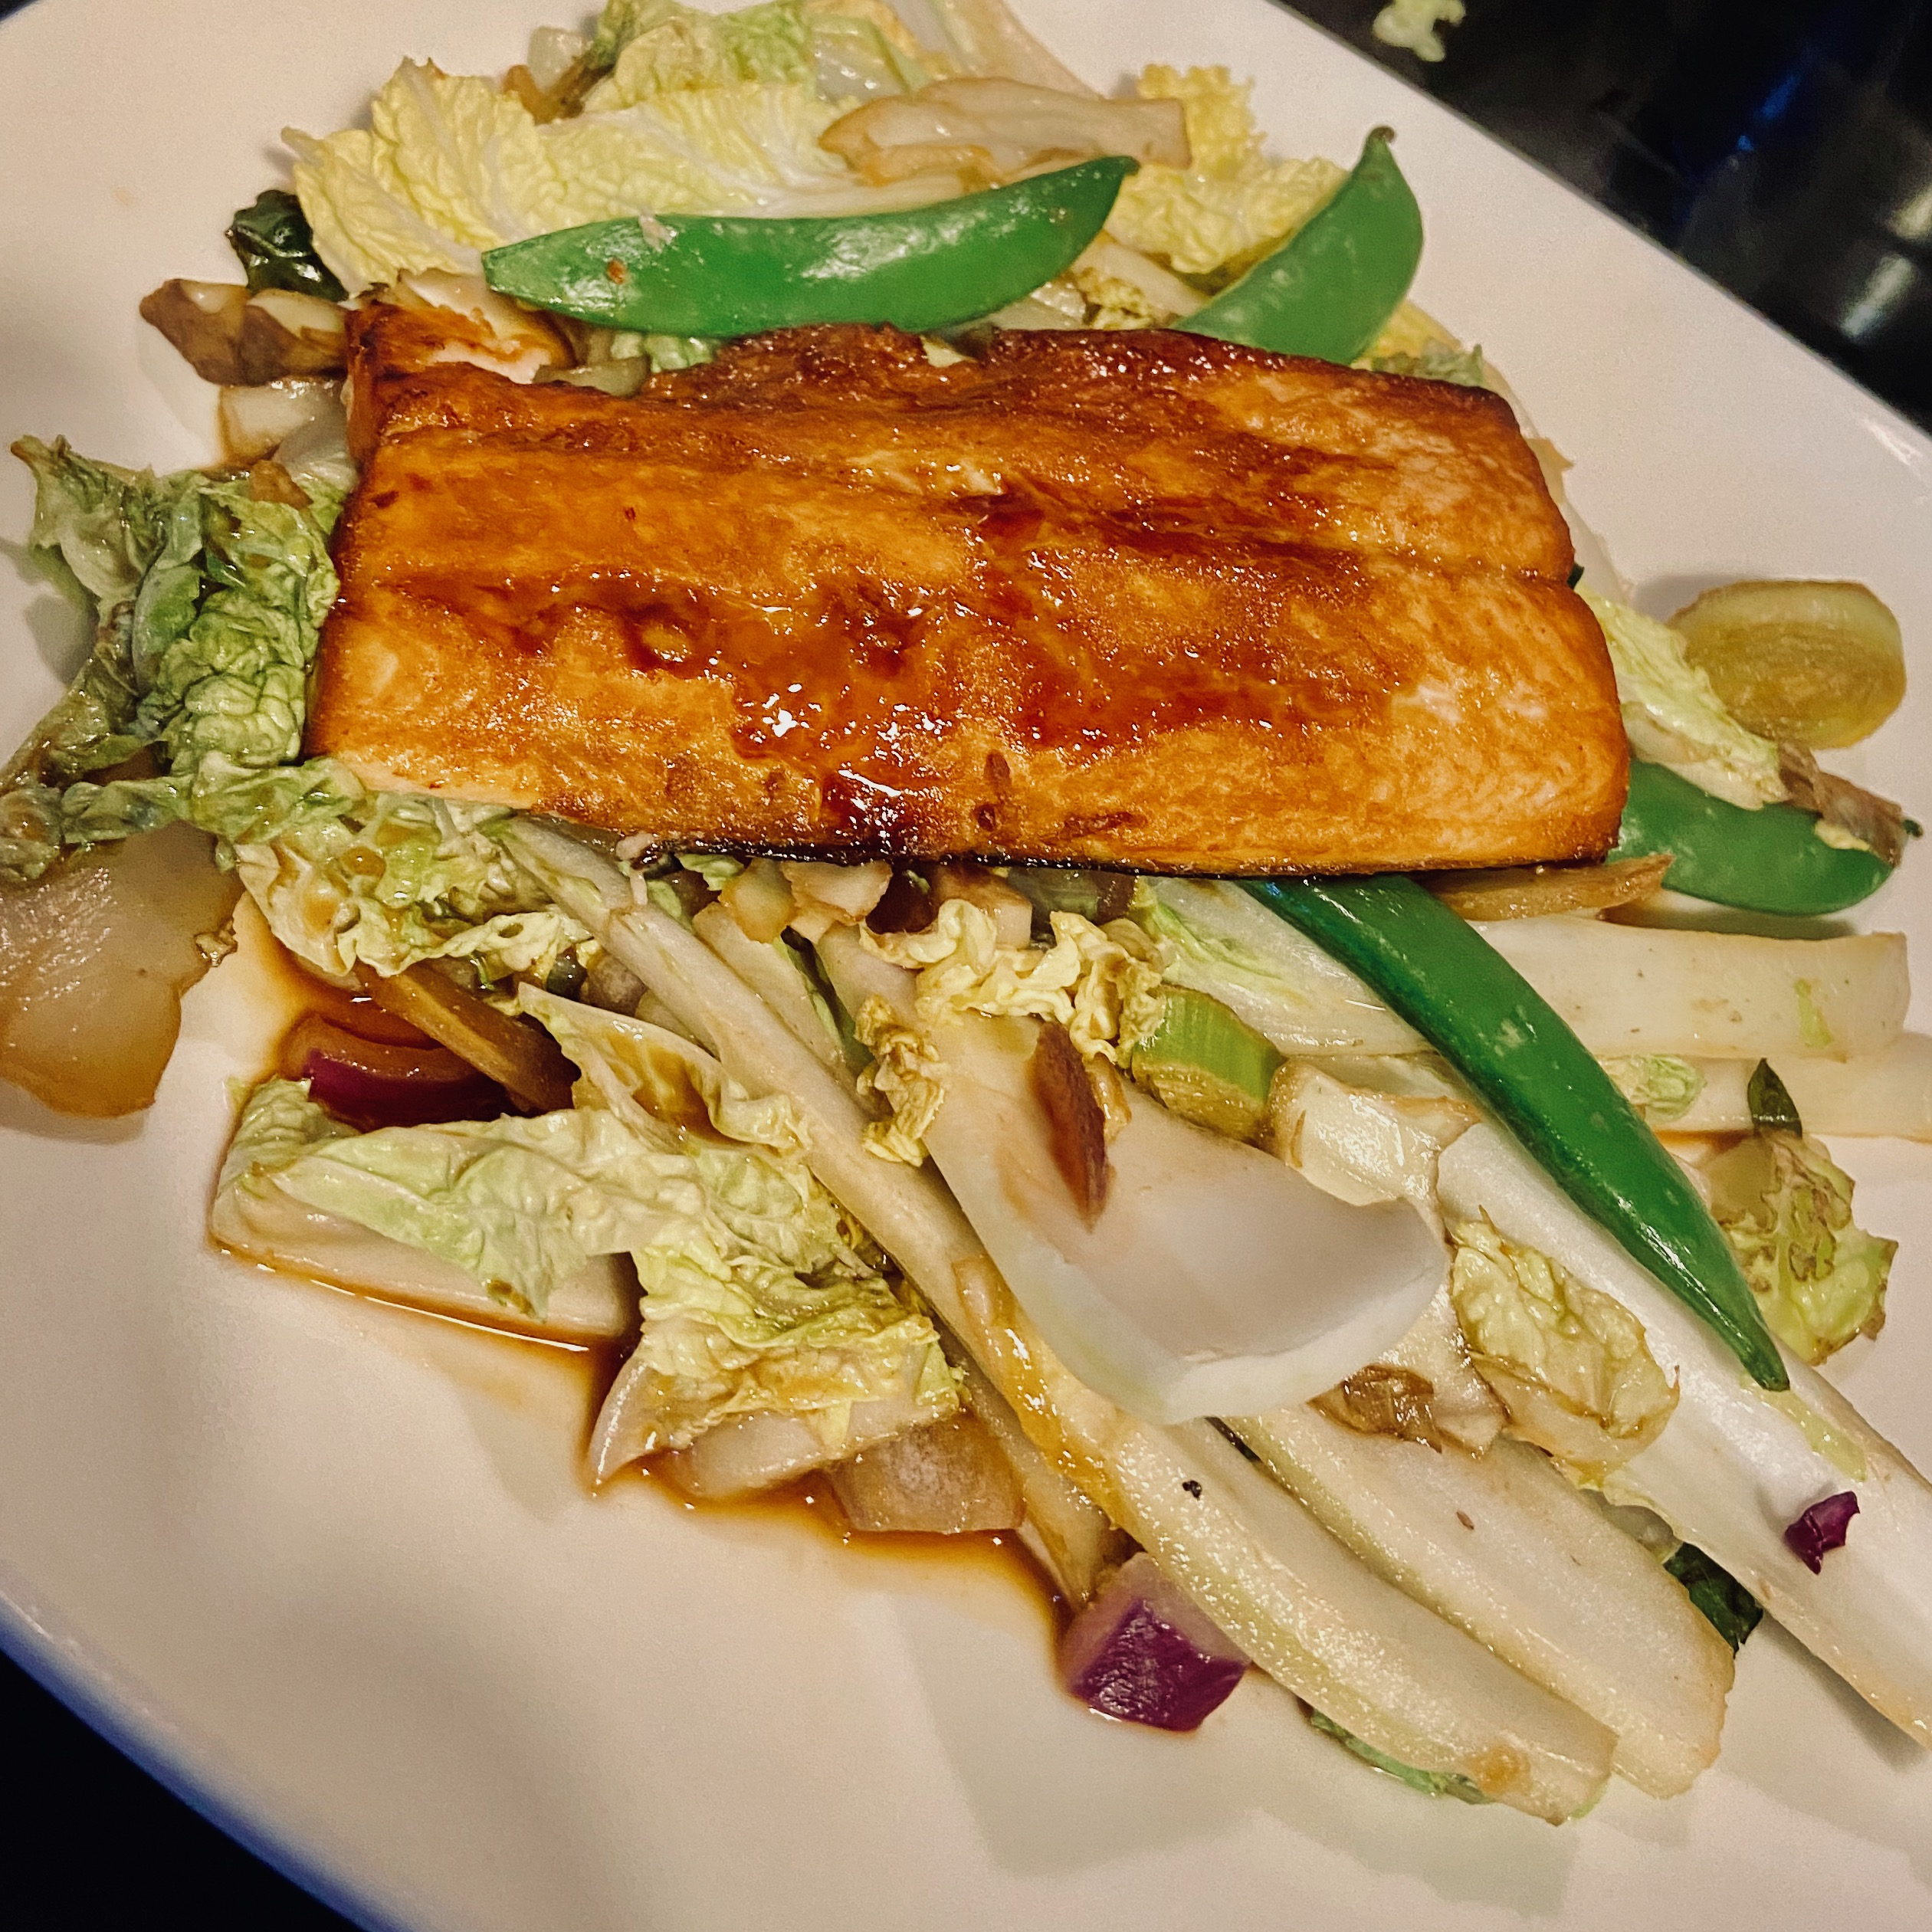 Salmon with ginger & honey glaze